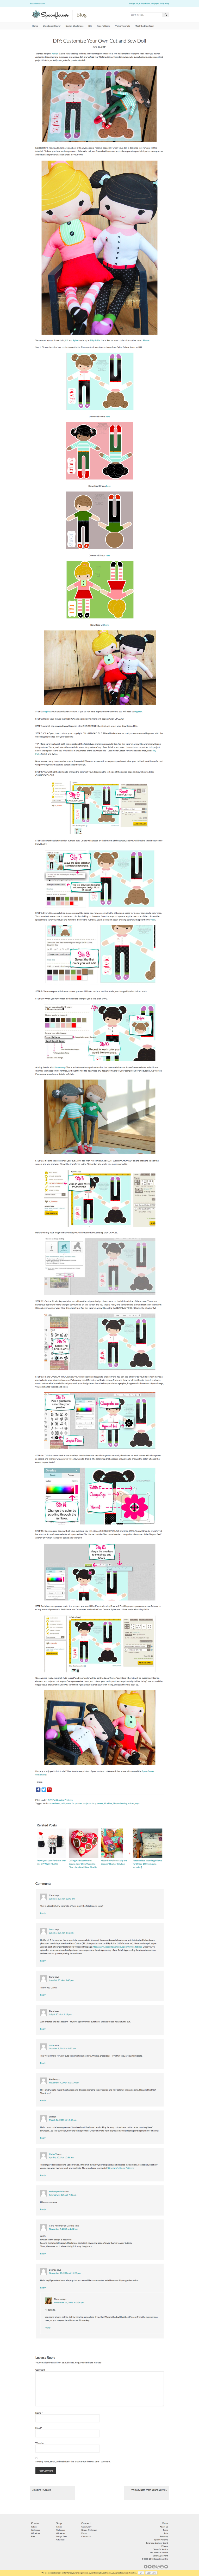 screencapture-blog-spoonflower-2014-06-create-a-custom-softie-doll-2018-05-28-15_01_44.png